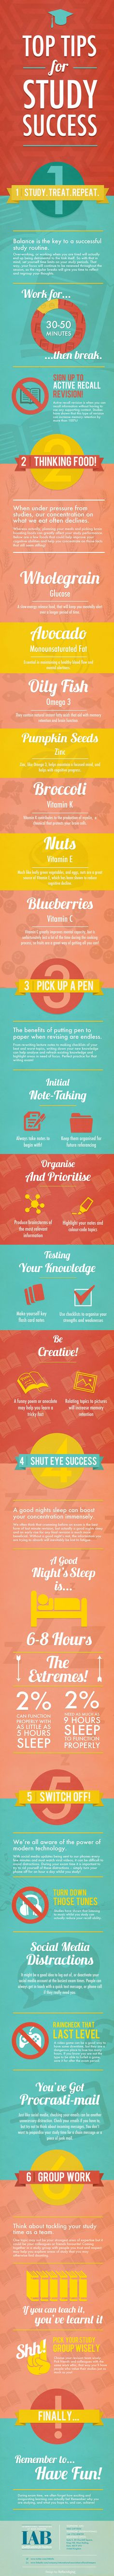 Use these tips to develop successful study habits.